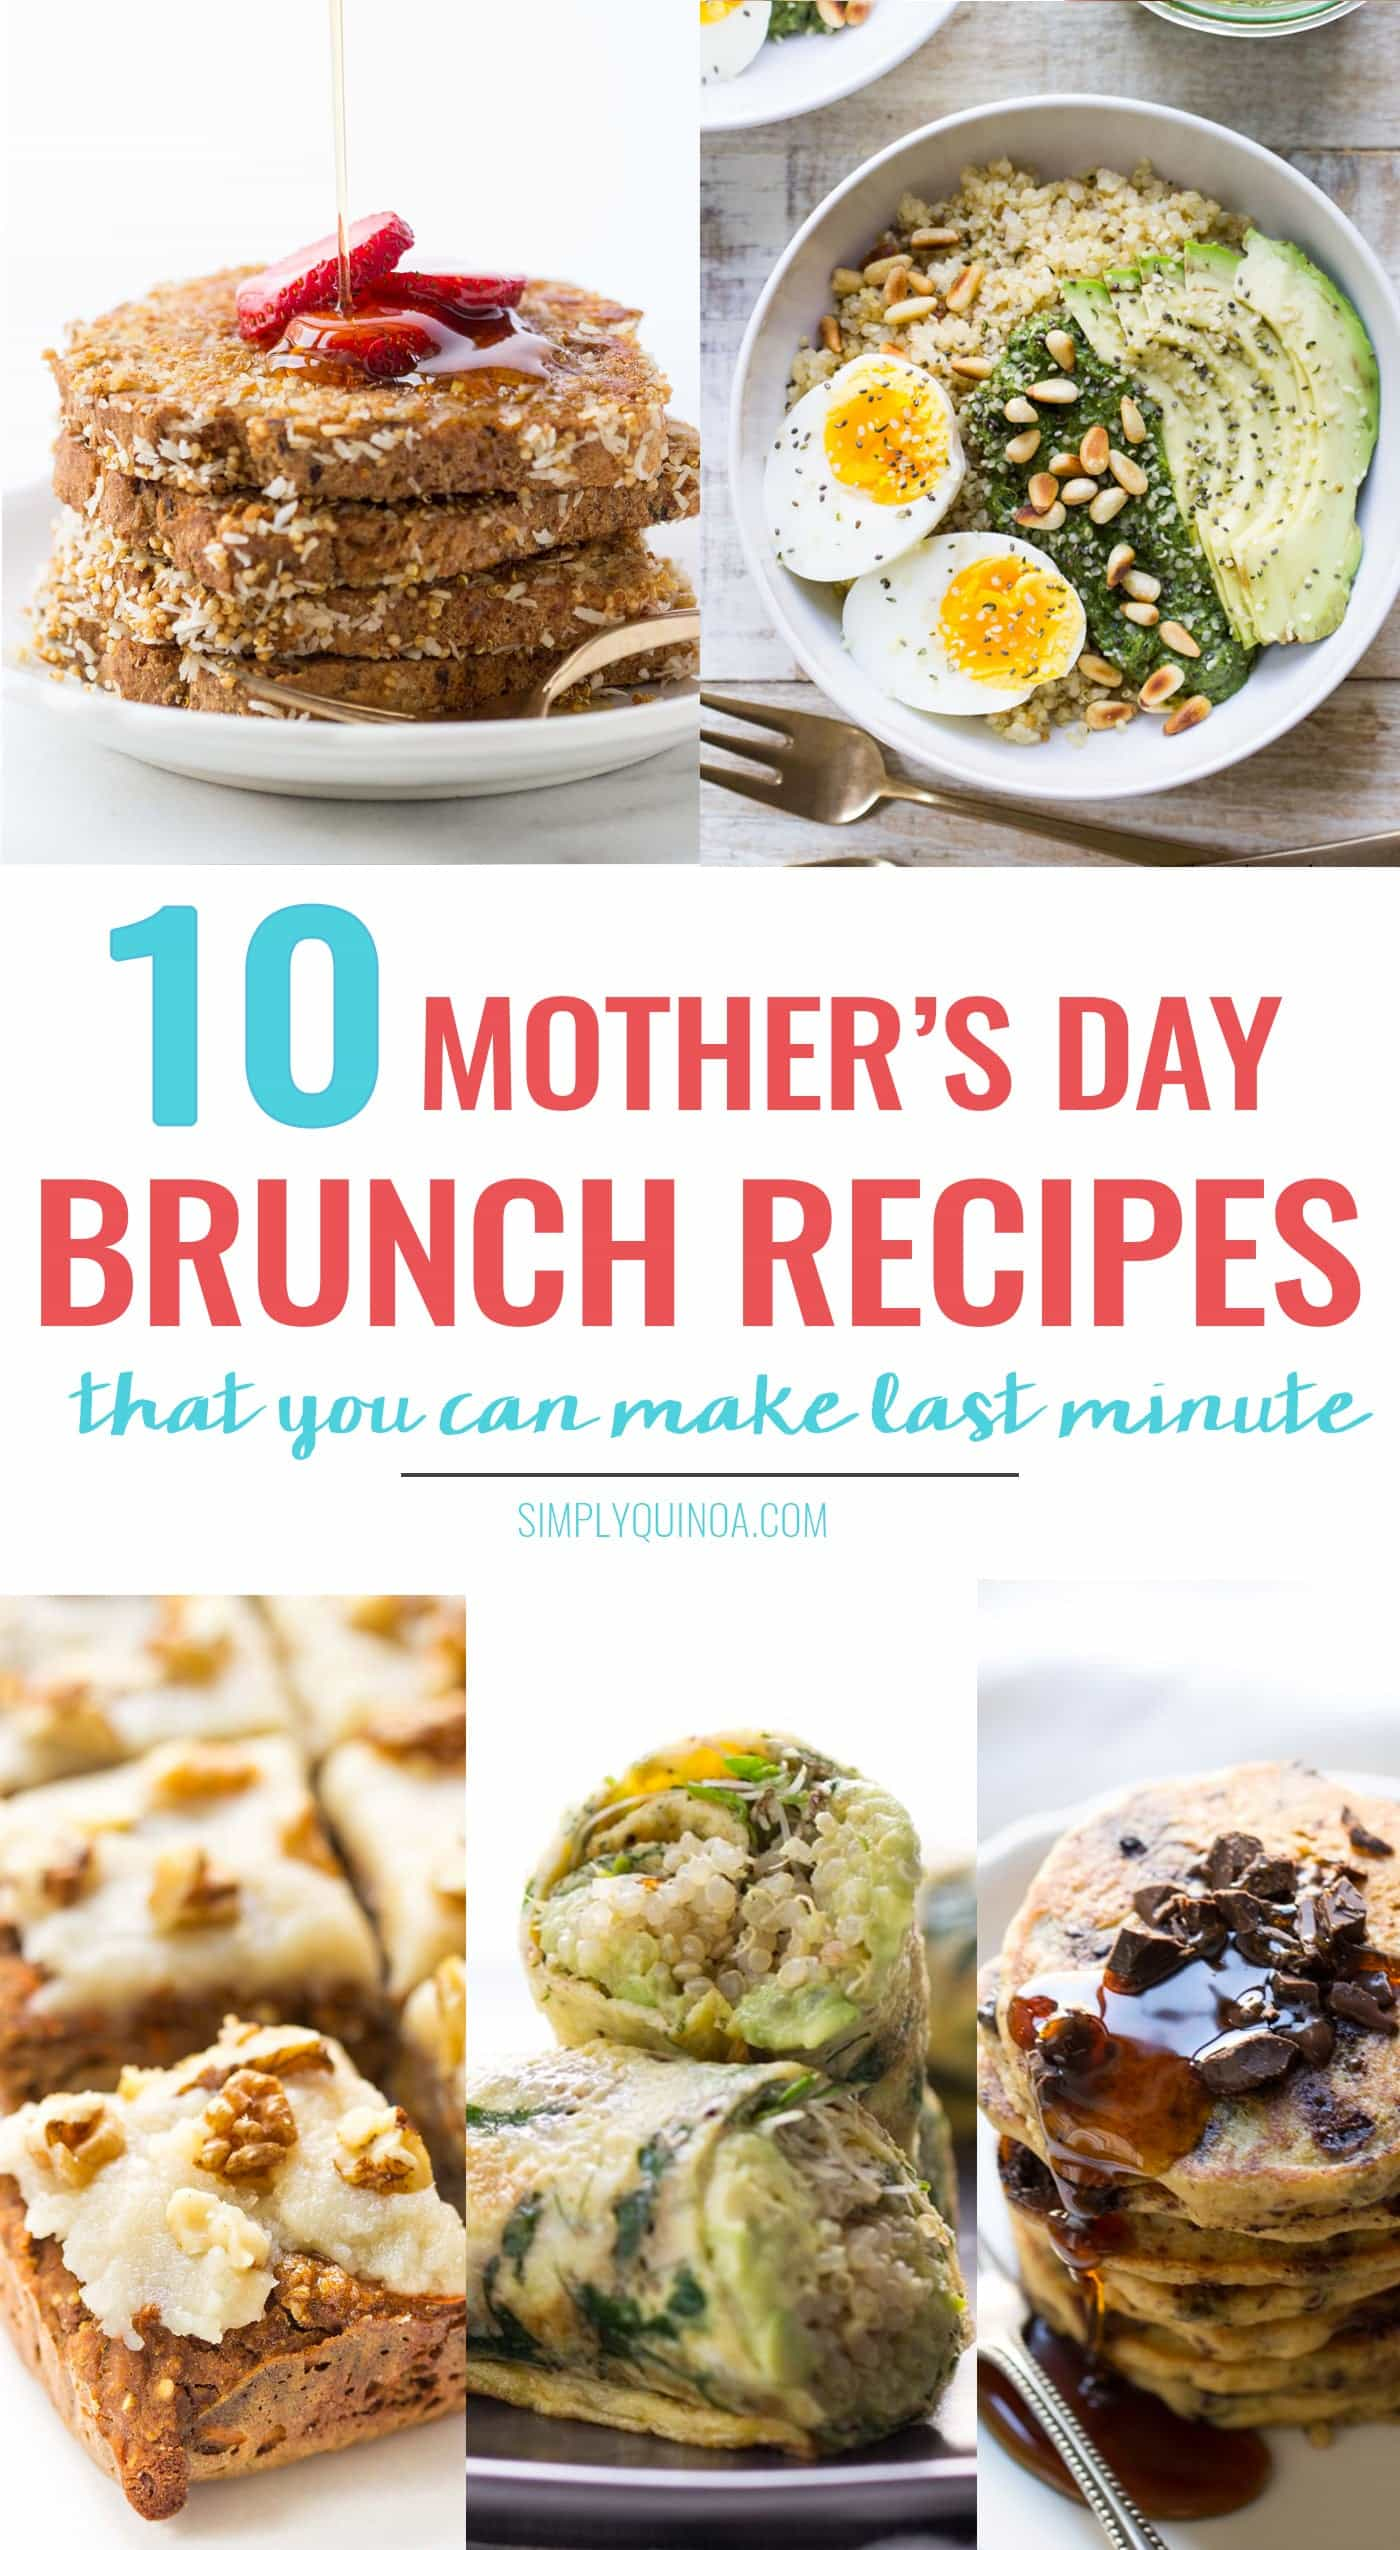 No plan for Mother's Day? No problem! Here are 10 easy and healthy Mother's Day Brunch Recipes that you can make last minute!